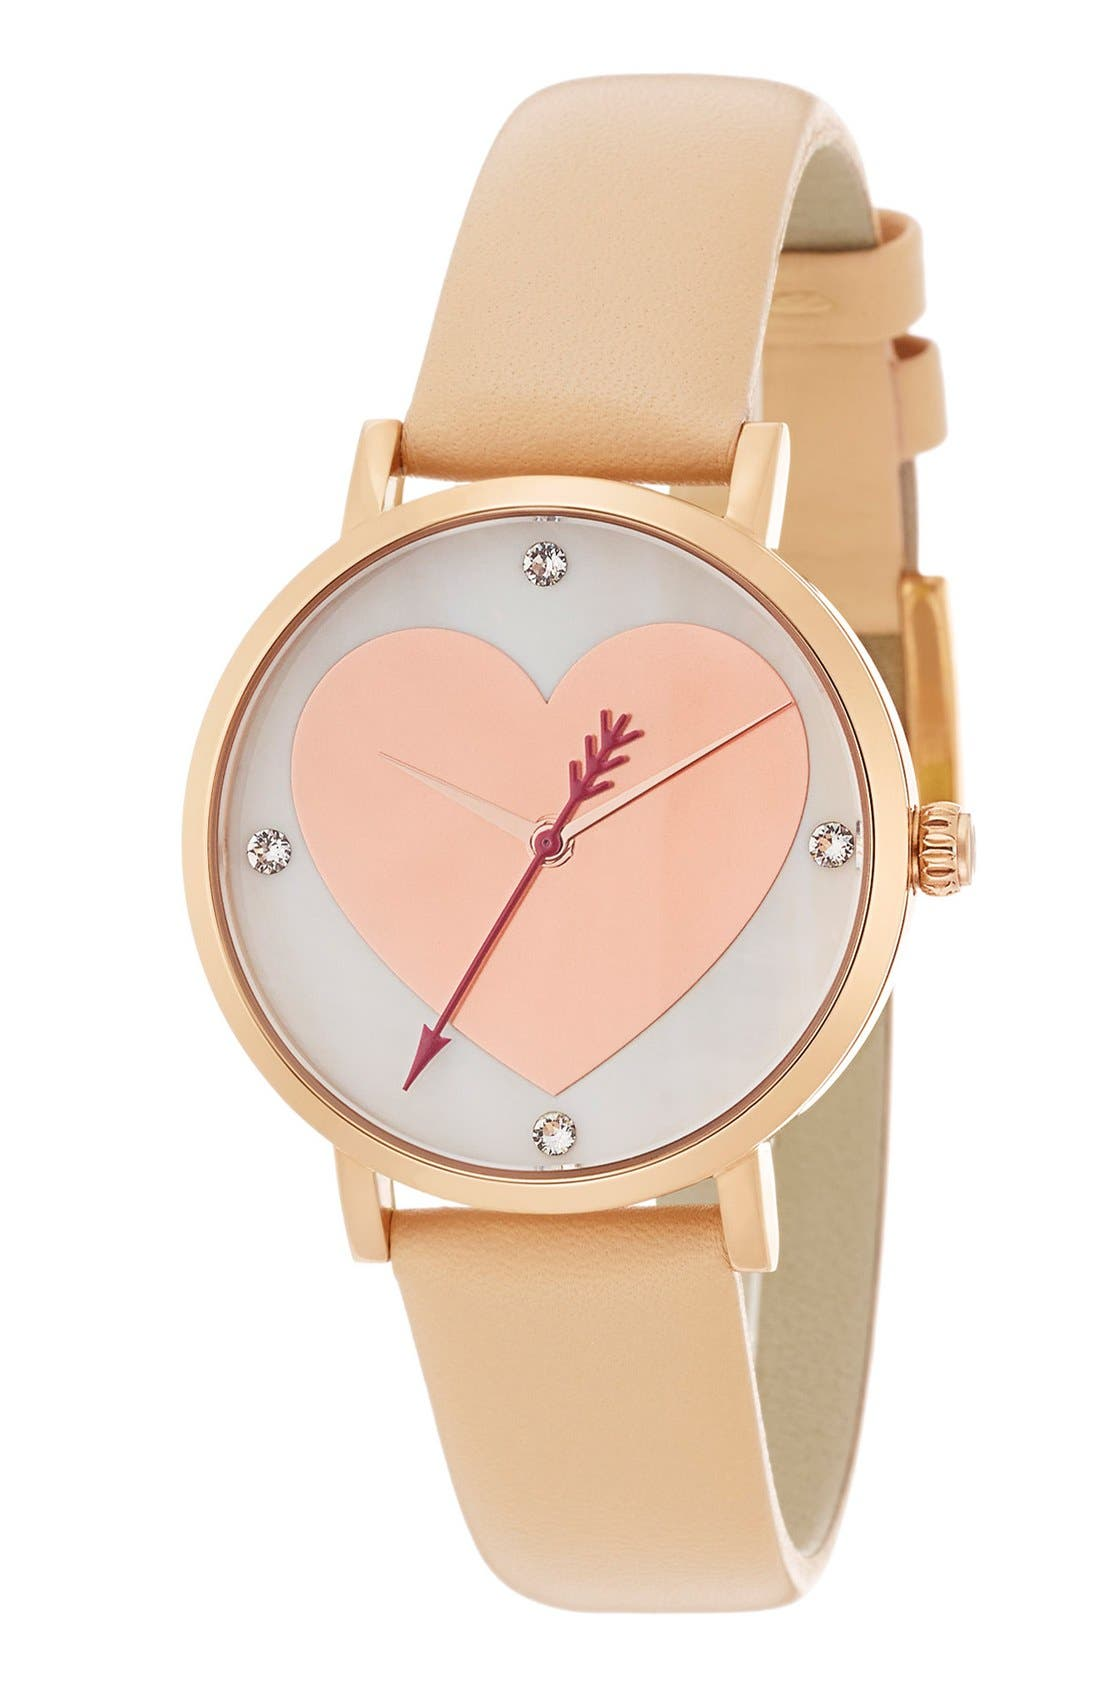 Main Image - kate spade new york 'metro' heart dial leather strap watch, 34mm